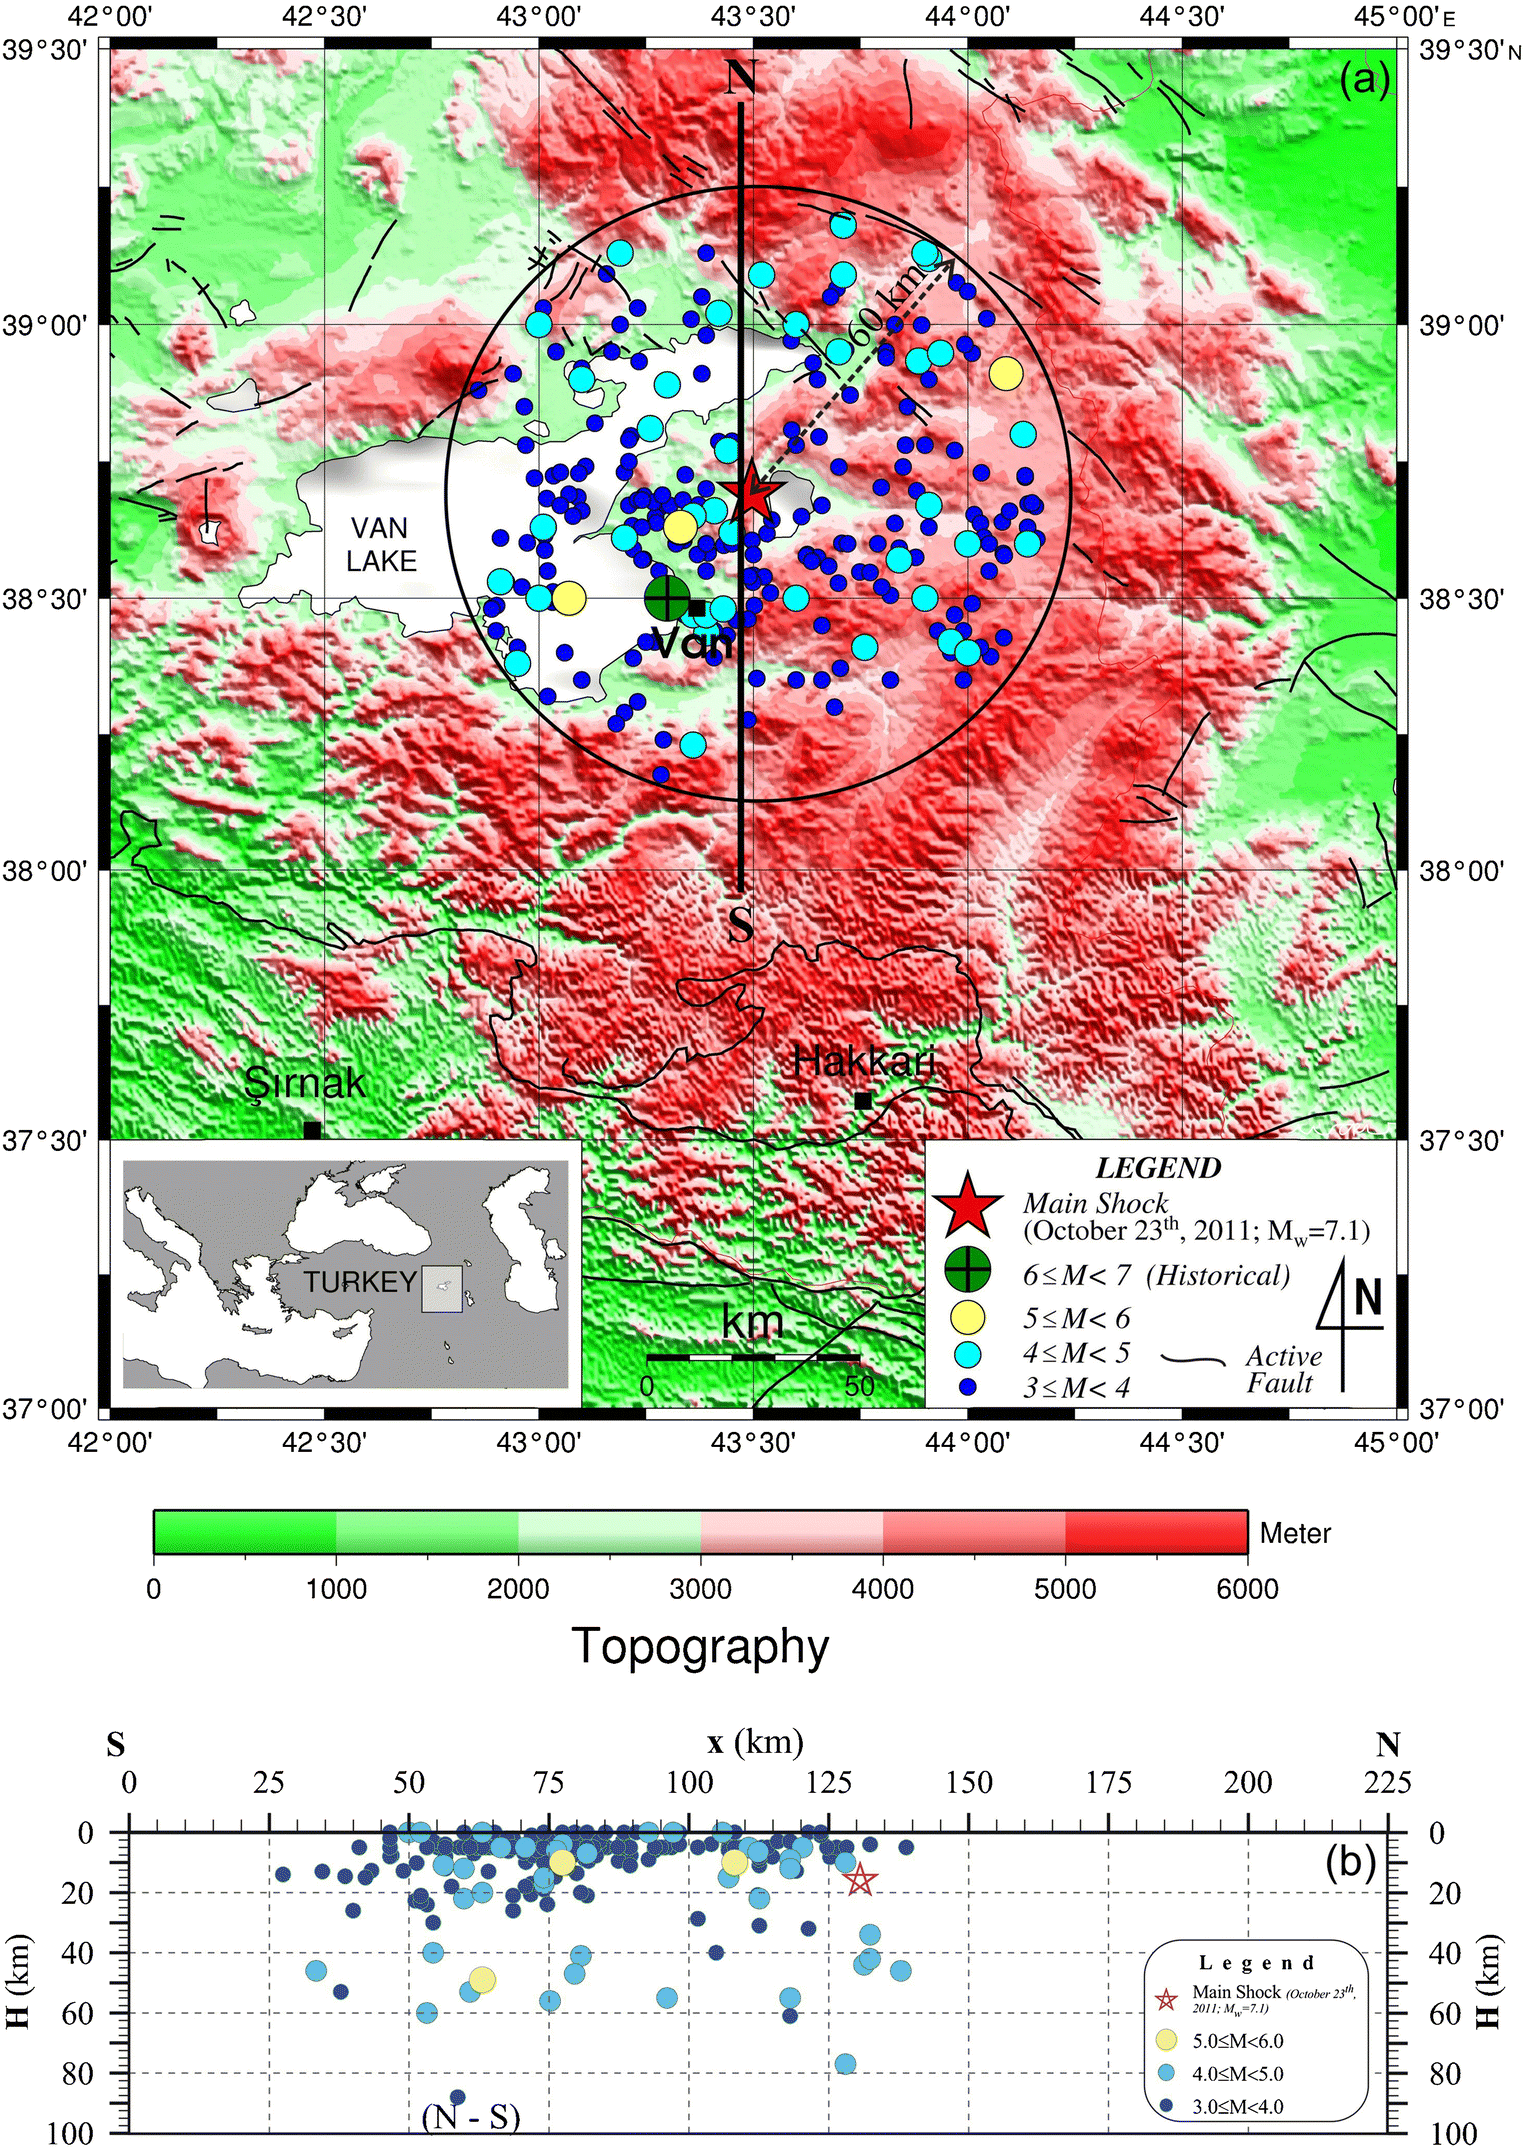 HYPOSEC: a new tool to determine the earthquake fracture mechanism